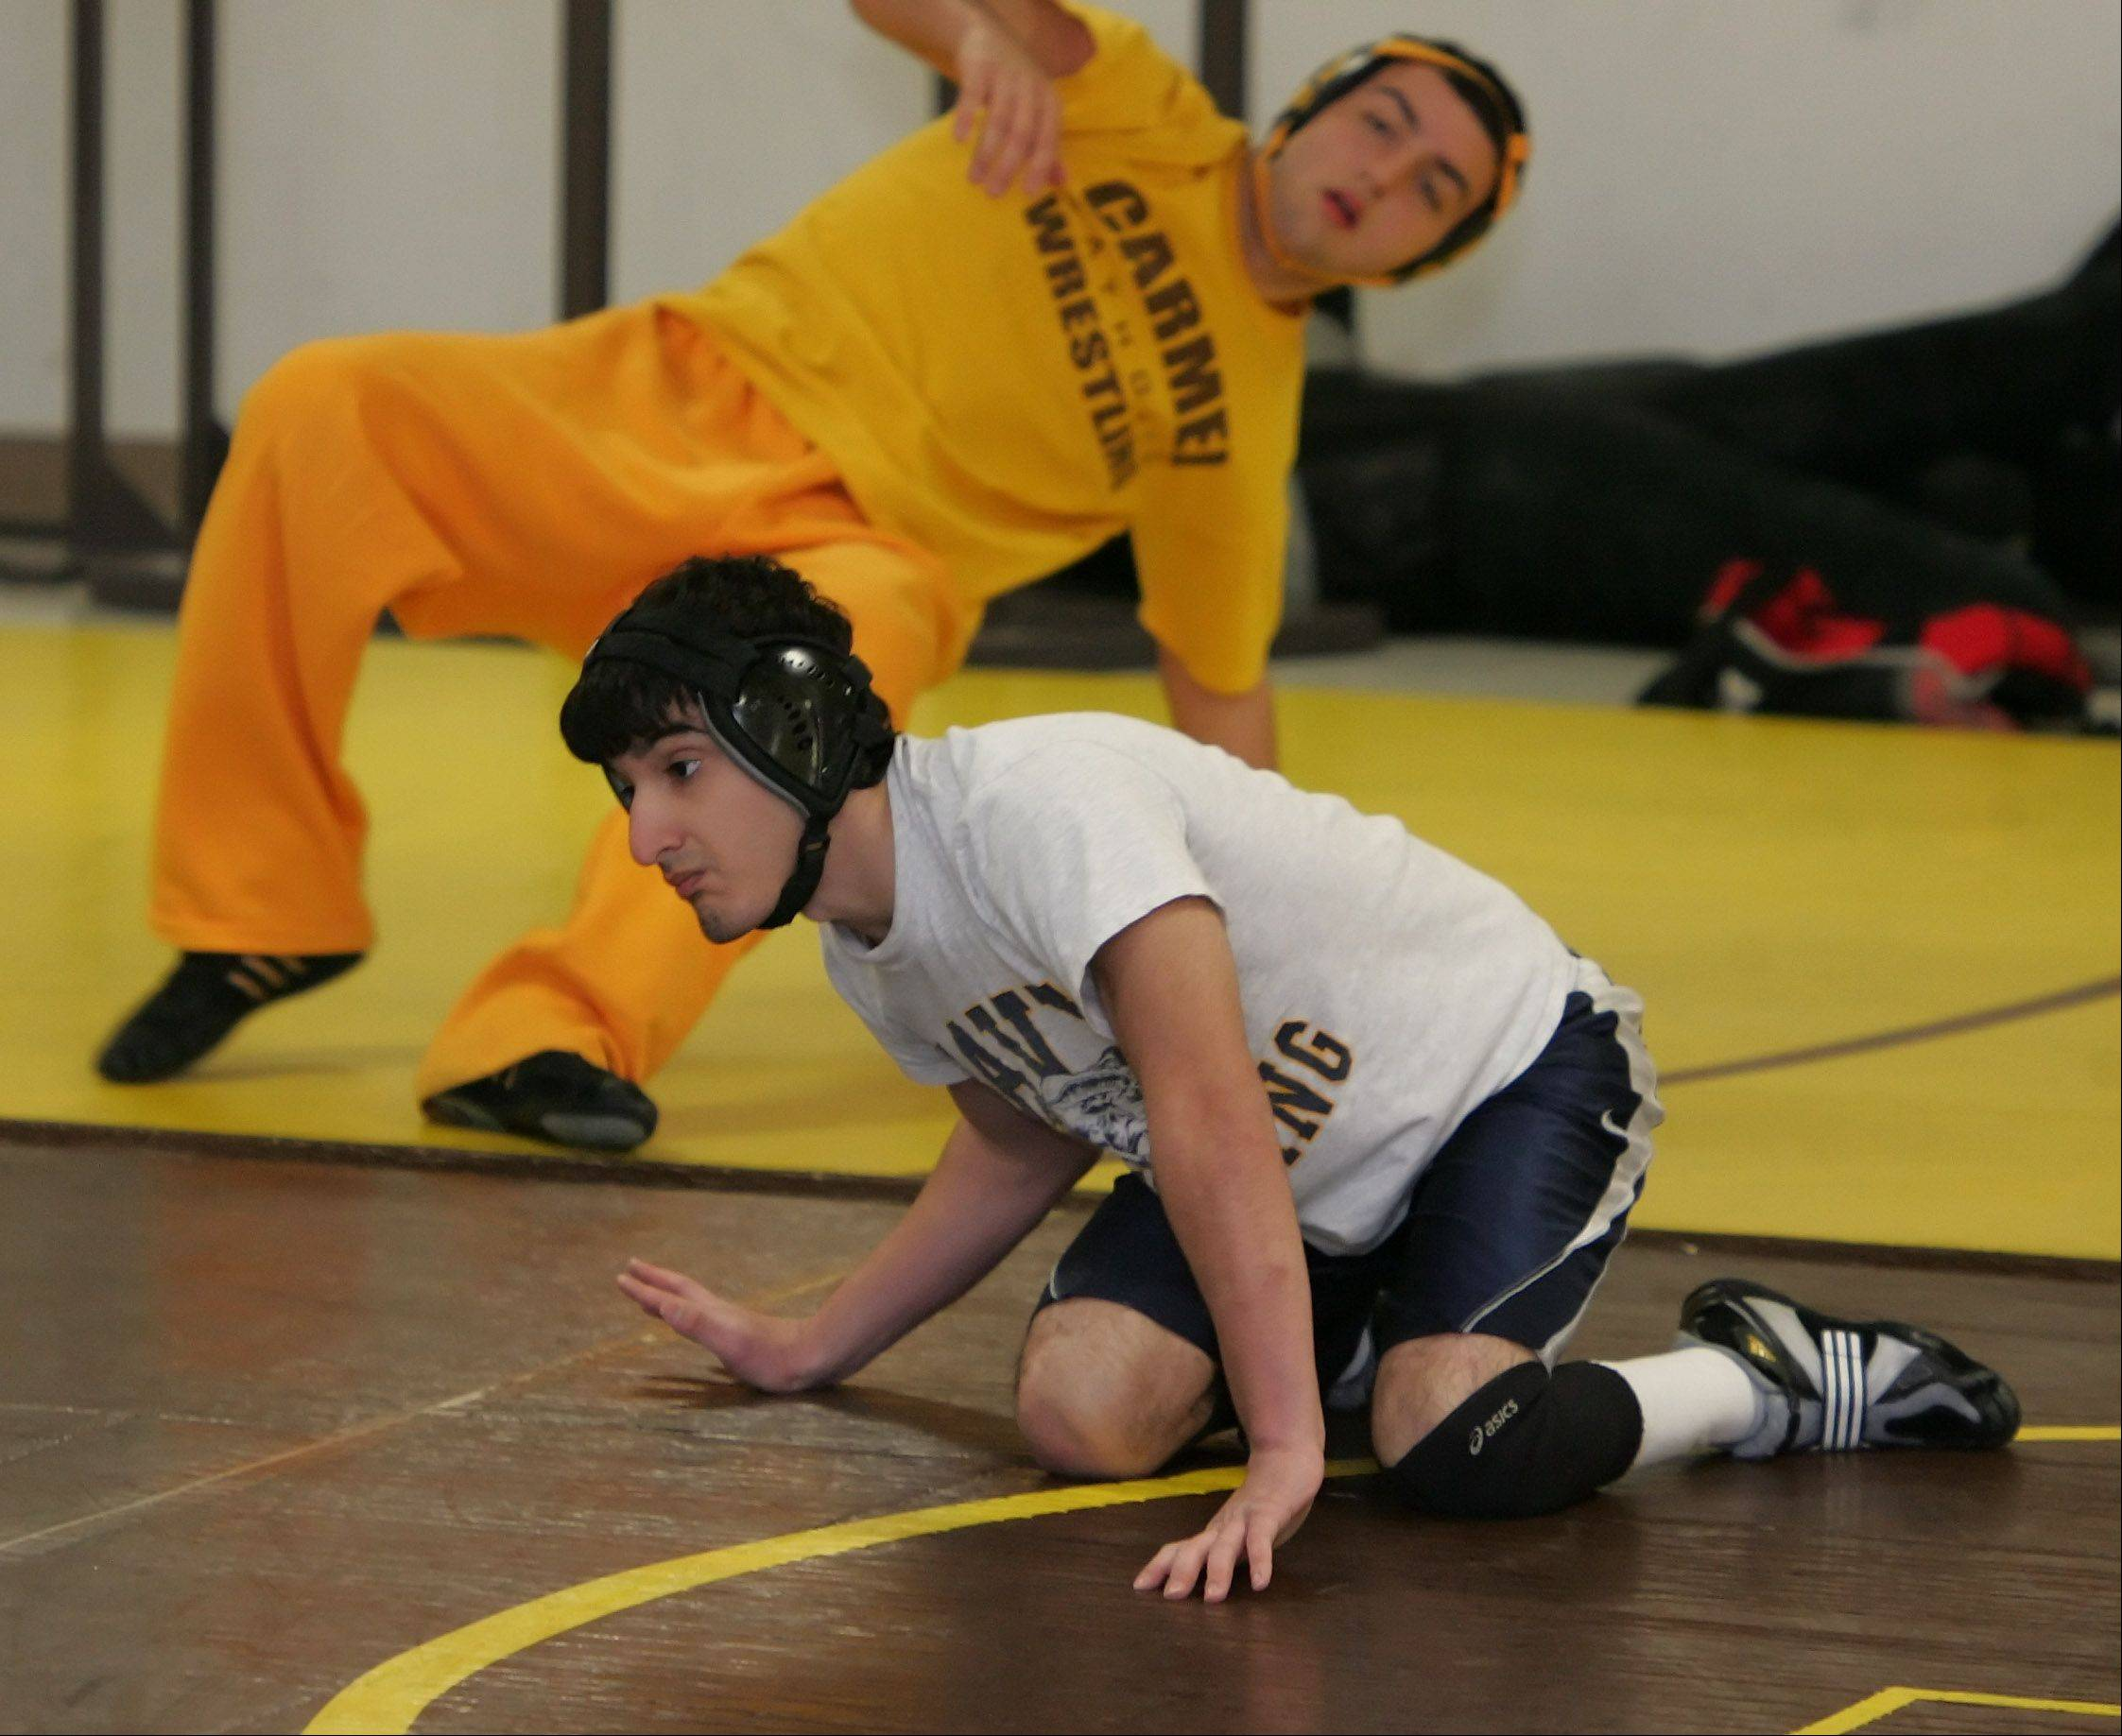 Carmel Catholic's Cristian Migliarese goes through maneuver drills at practice Wednesday. Migliarese, who has spina bifida, nearly quit the sport last season but has won twice by pin already this winter.